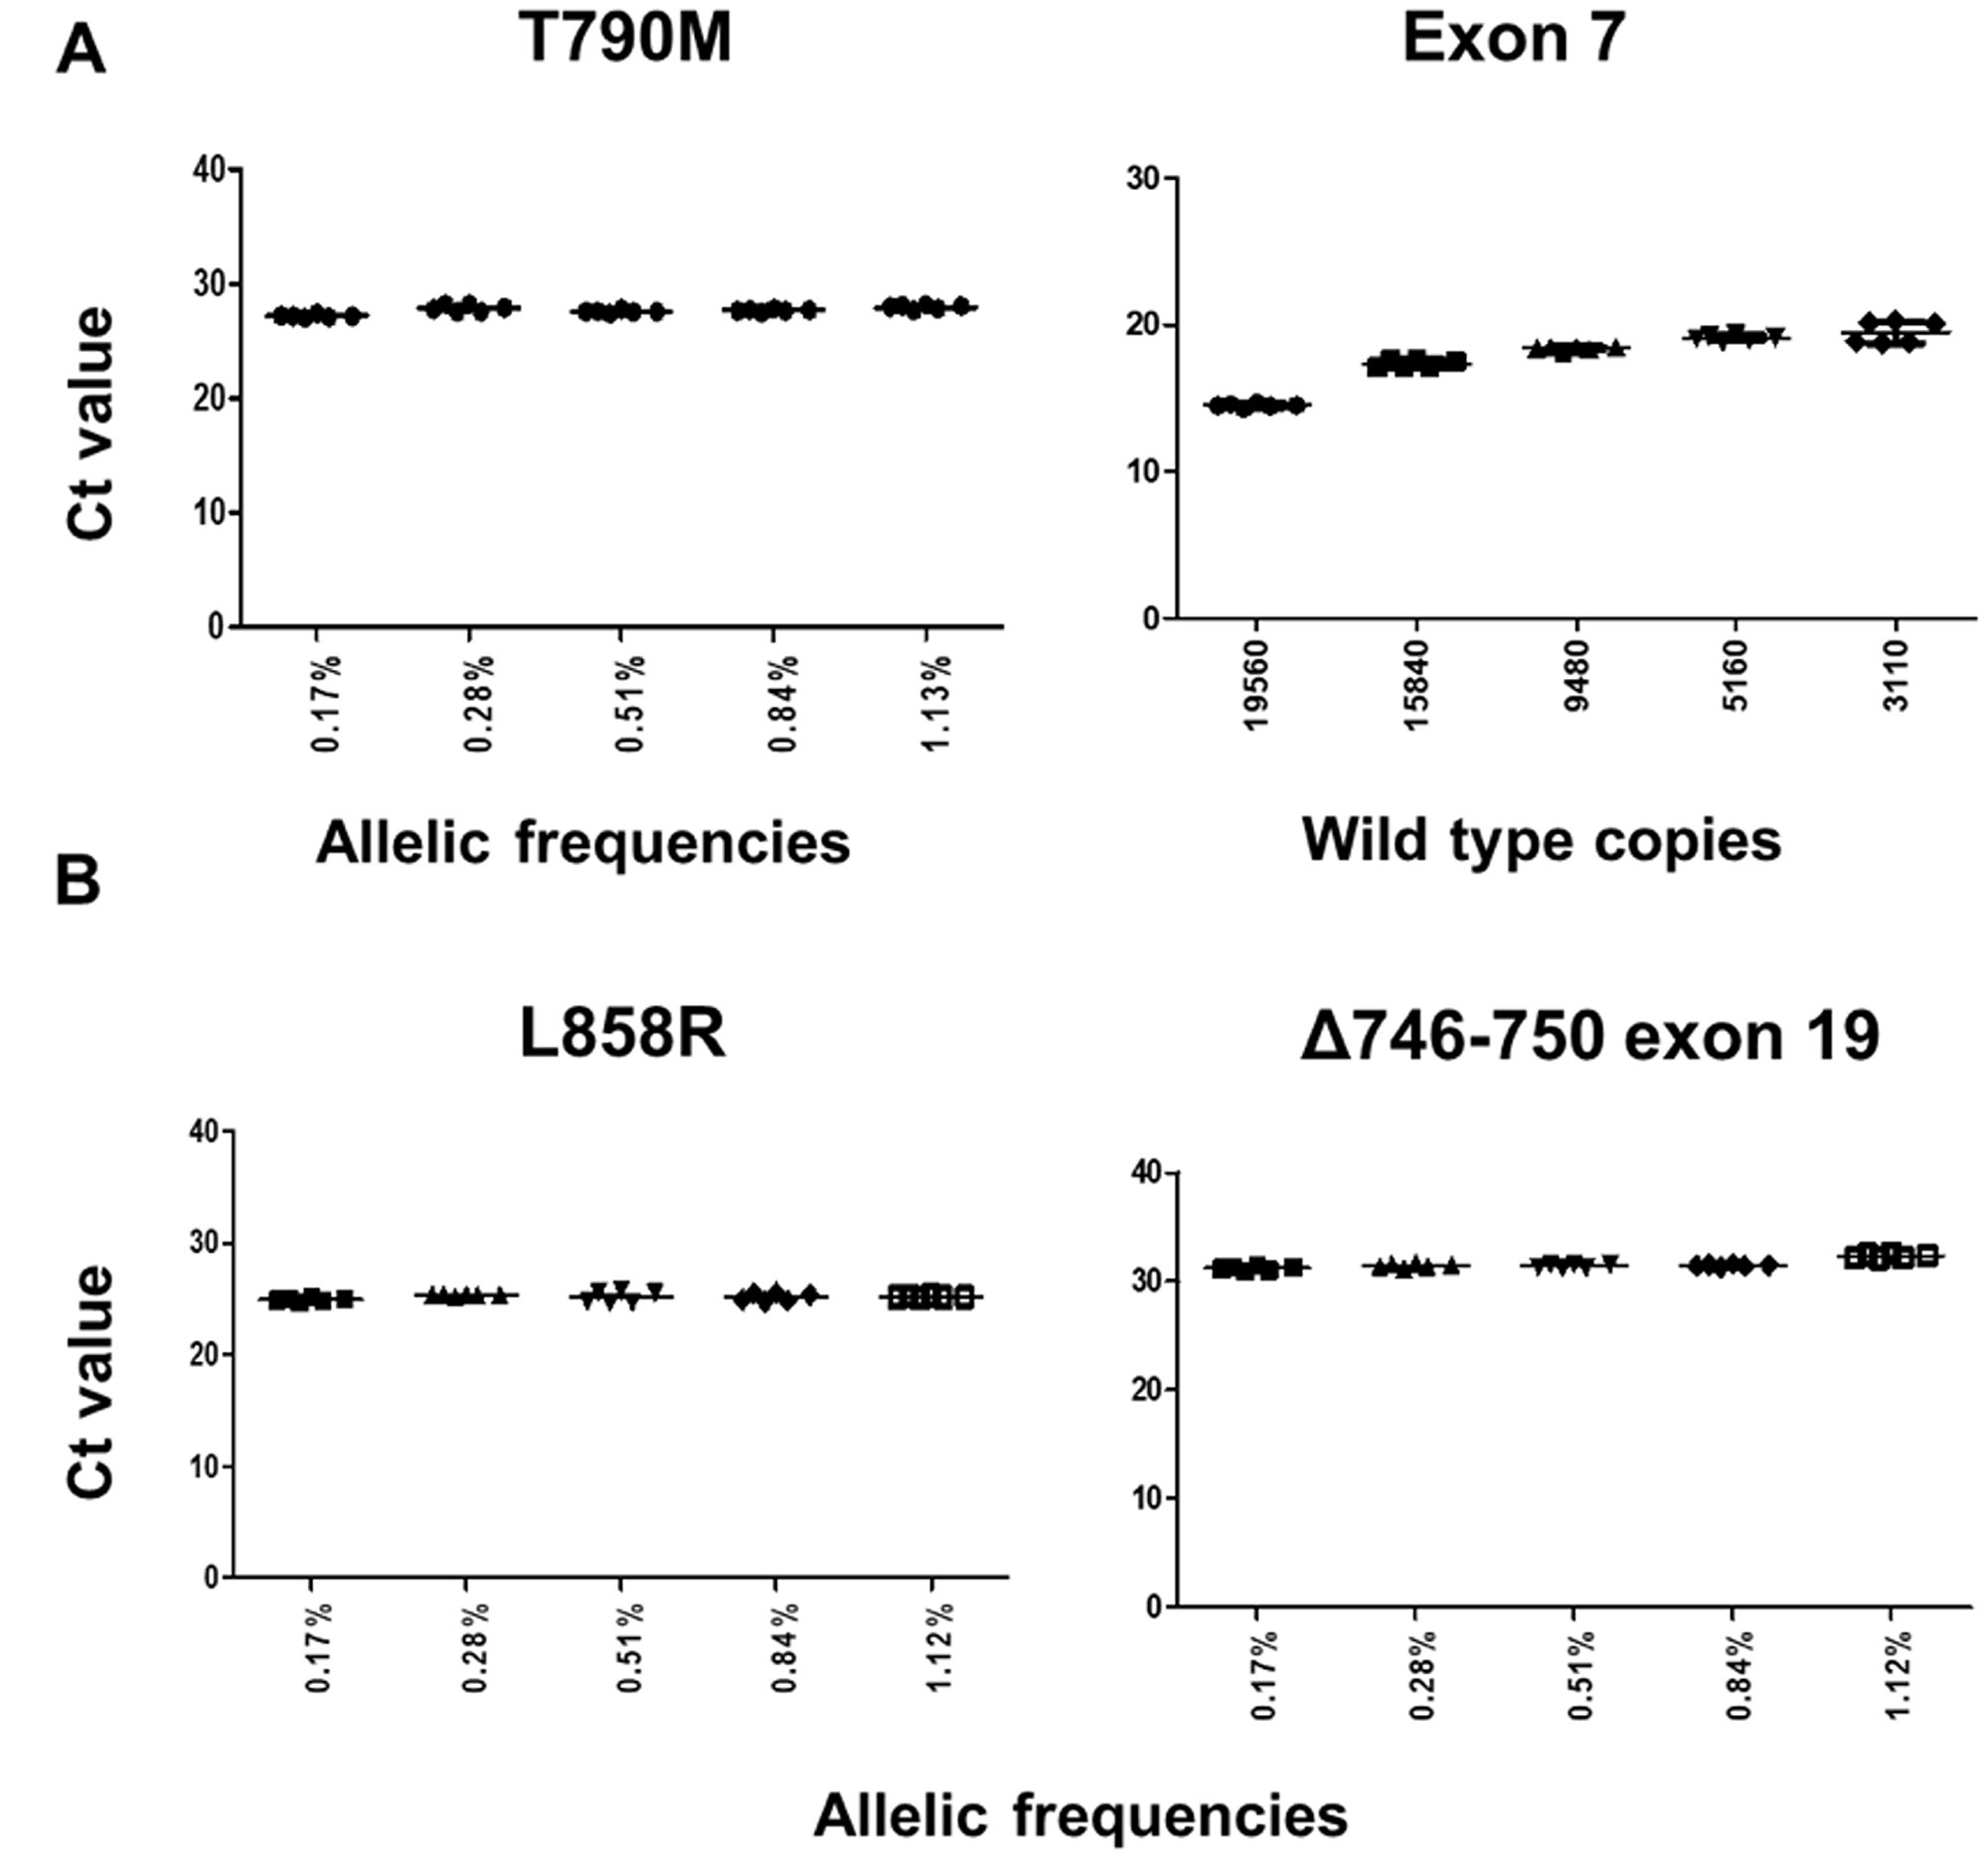 Assay robustness on gDNA admixtures for T790M, L858R and exon 19 deletion (Δ746-750).